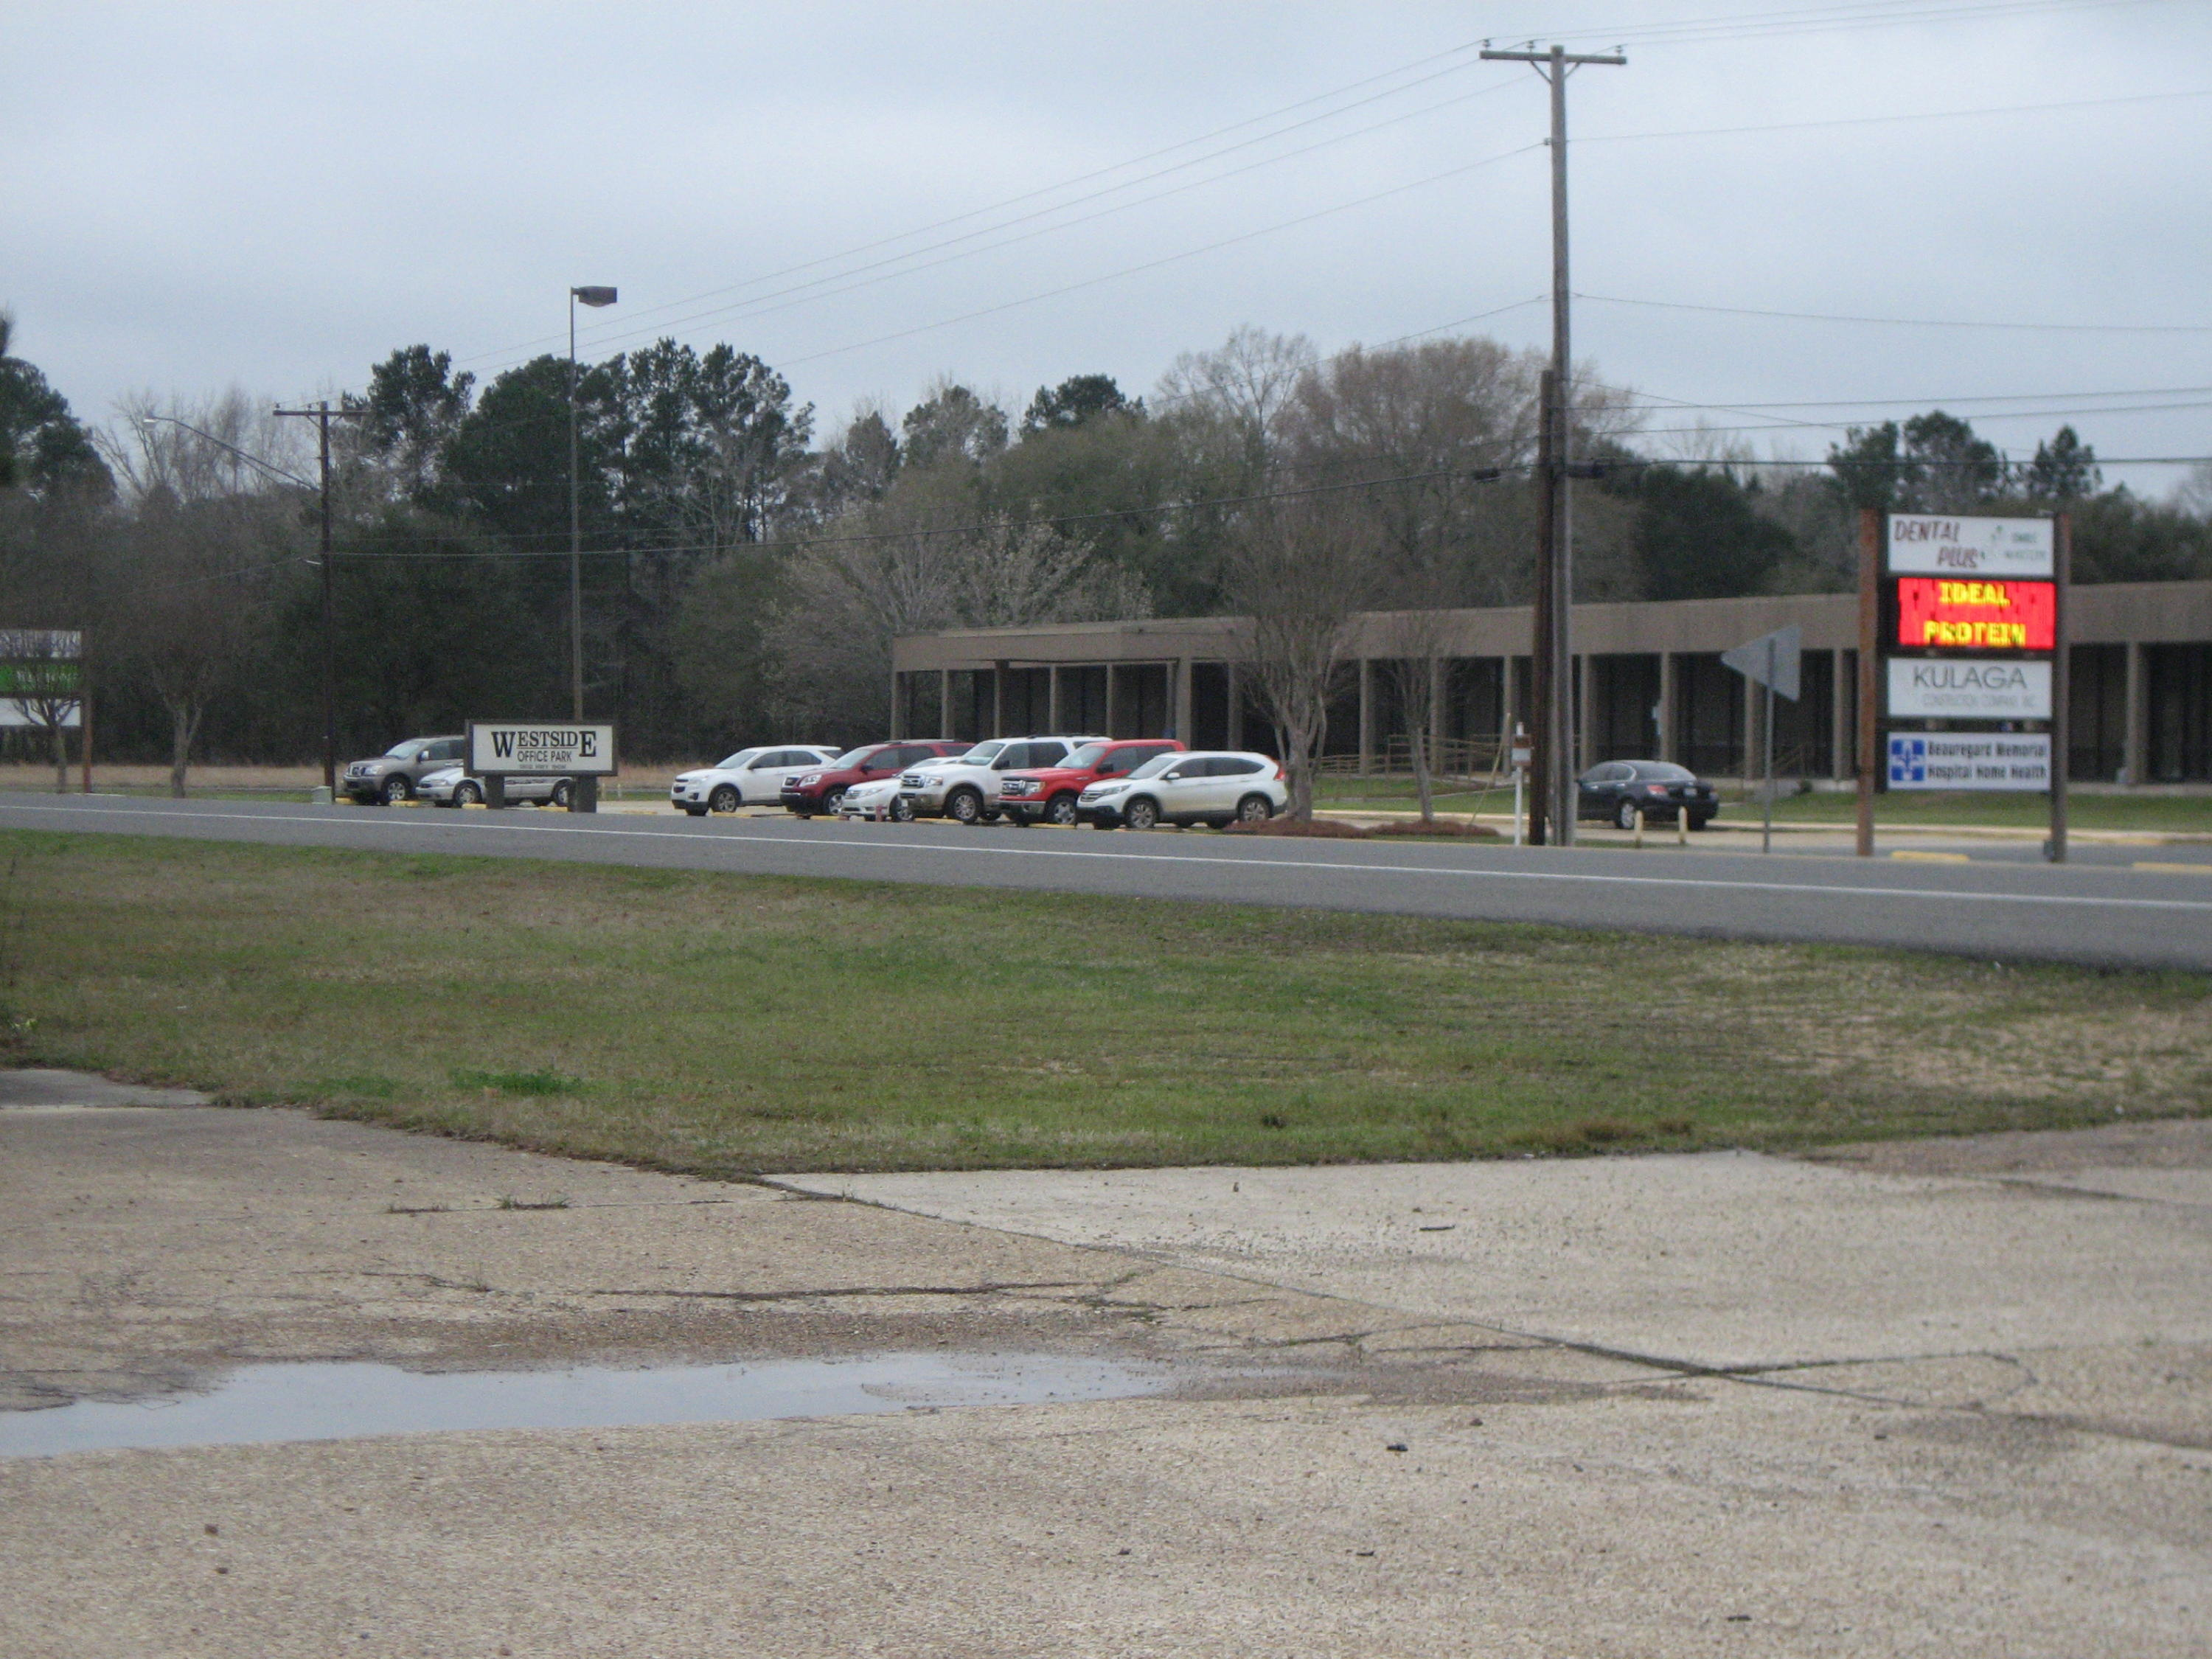 DeRidder land for sale,  1785 HWY 190, DeRidder LA - $225,000